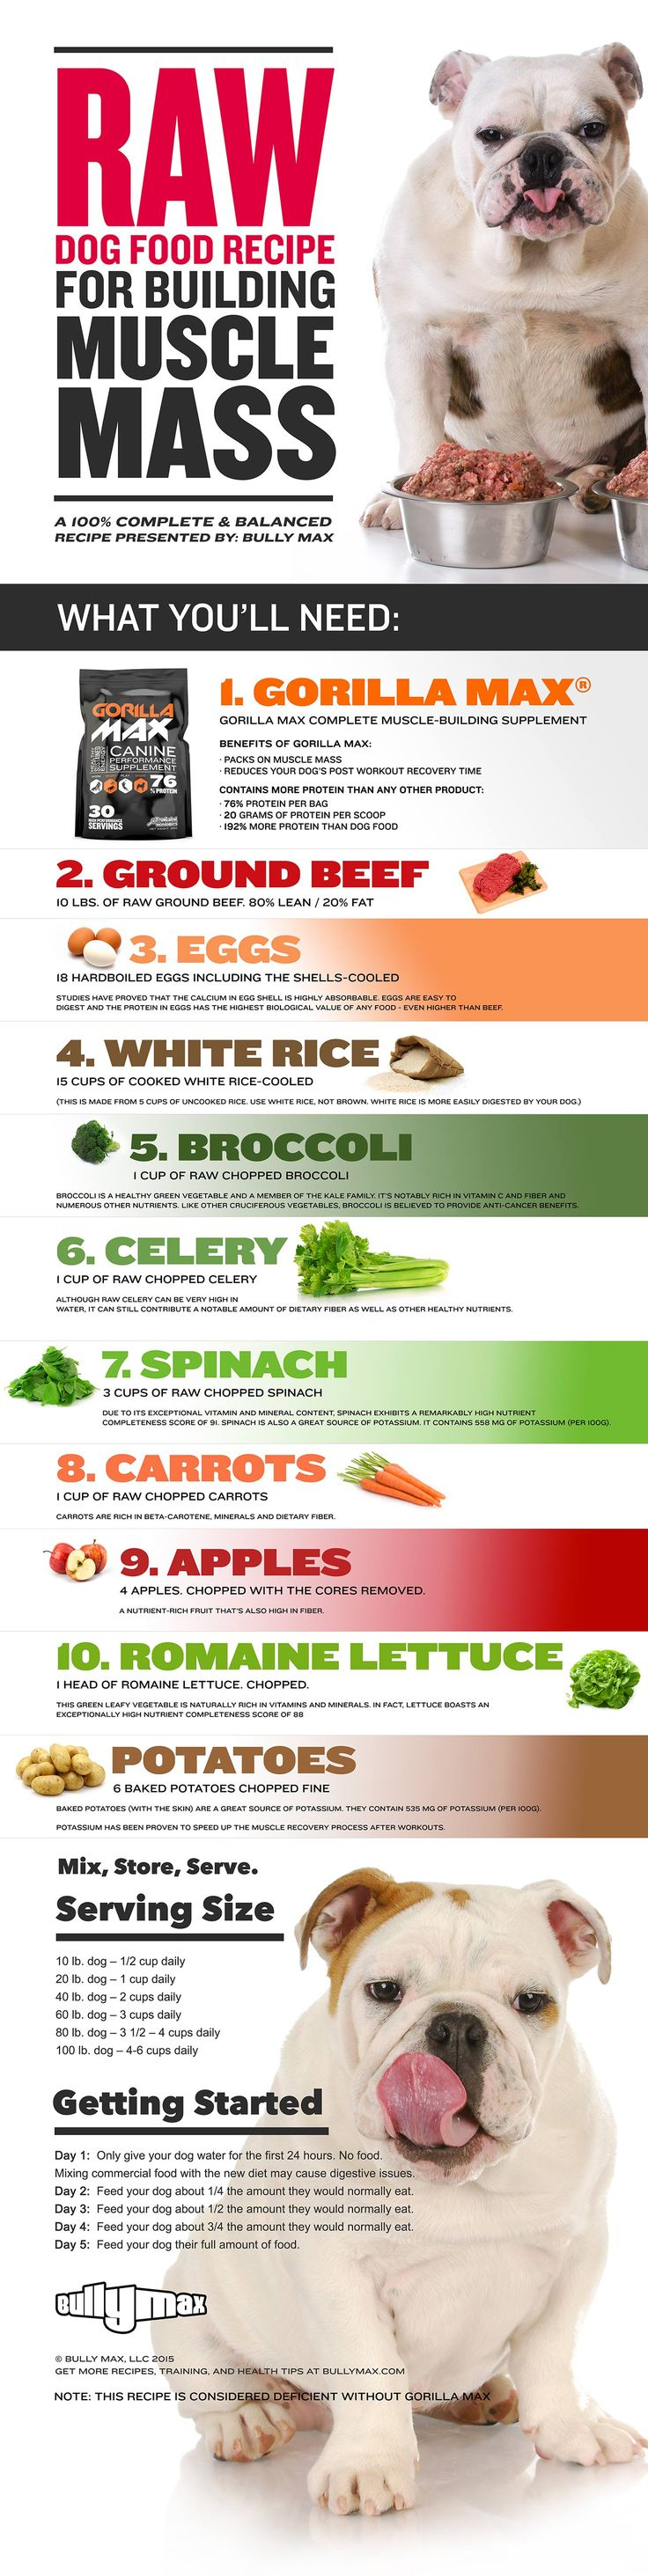 Raw dog food recipe for building muscle family pinterest raw video and infographic this raw dog food recipe is guaranteed to pack on pounds of muscle mass contains nearly 40 protein forumfinder Gallery